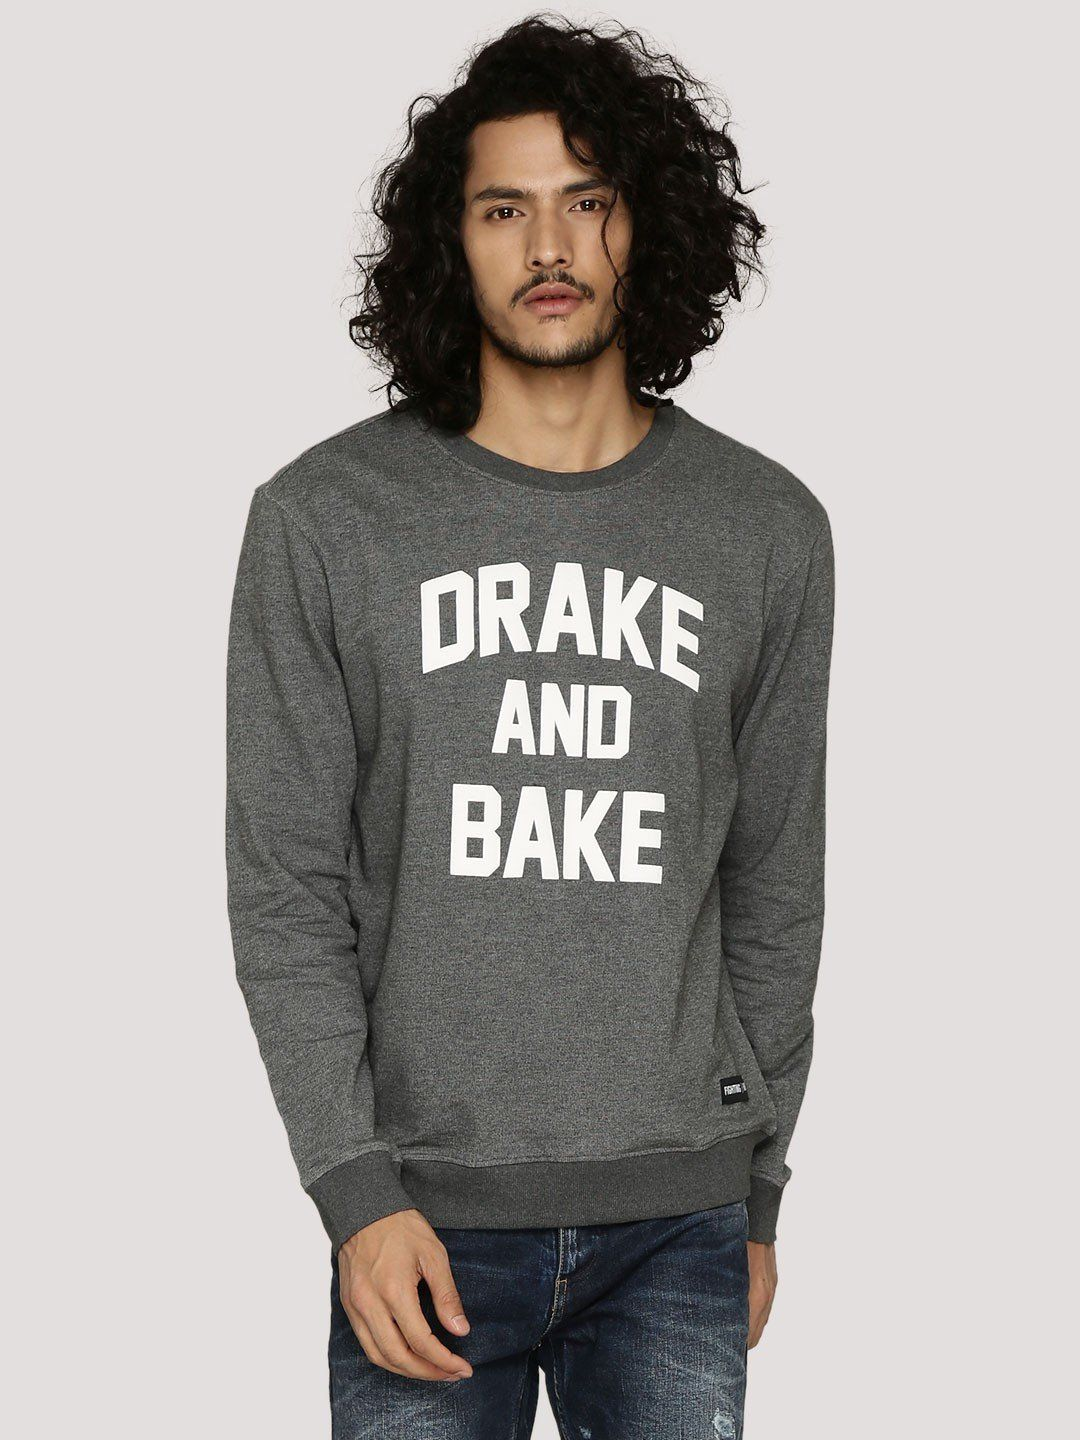 DRAKE AND BAKE Grey Melange Sweatshirt - Fighting Fame  - 1